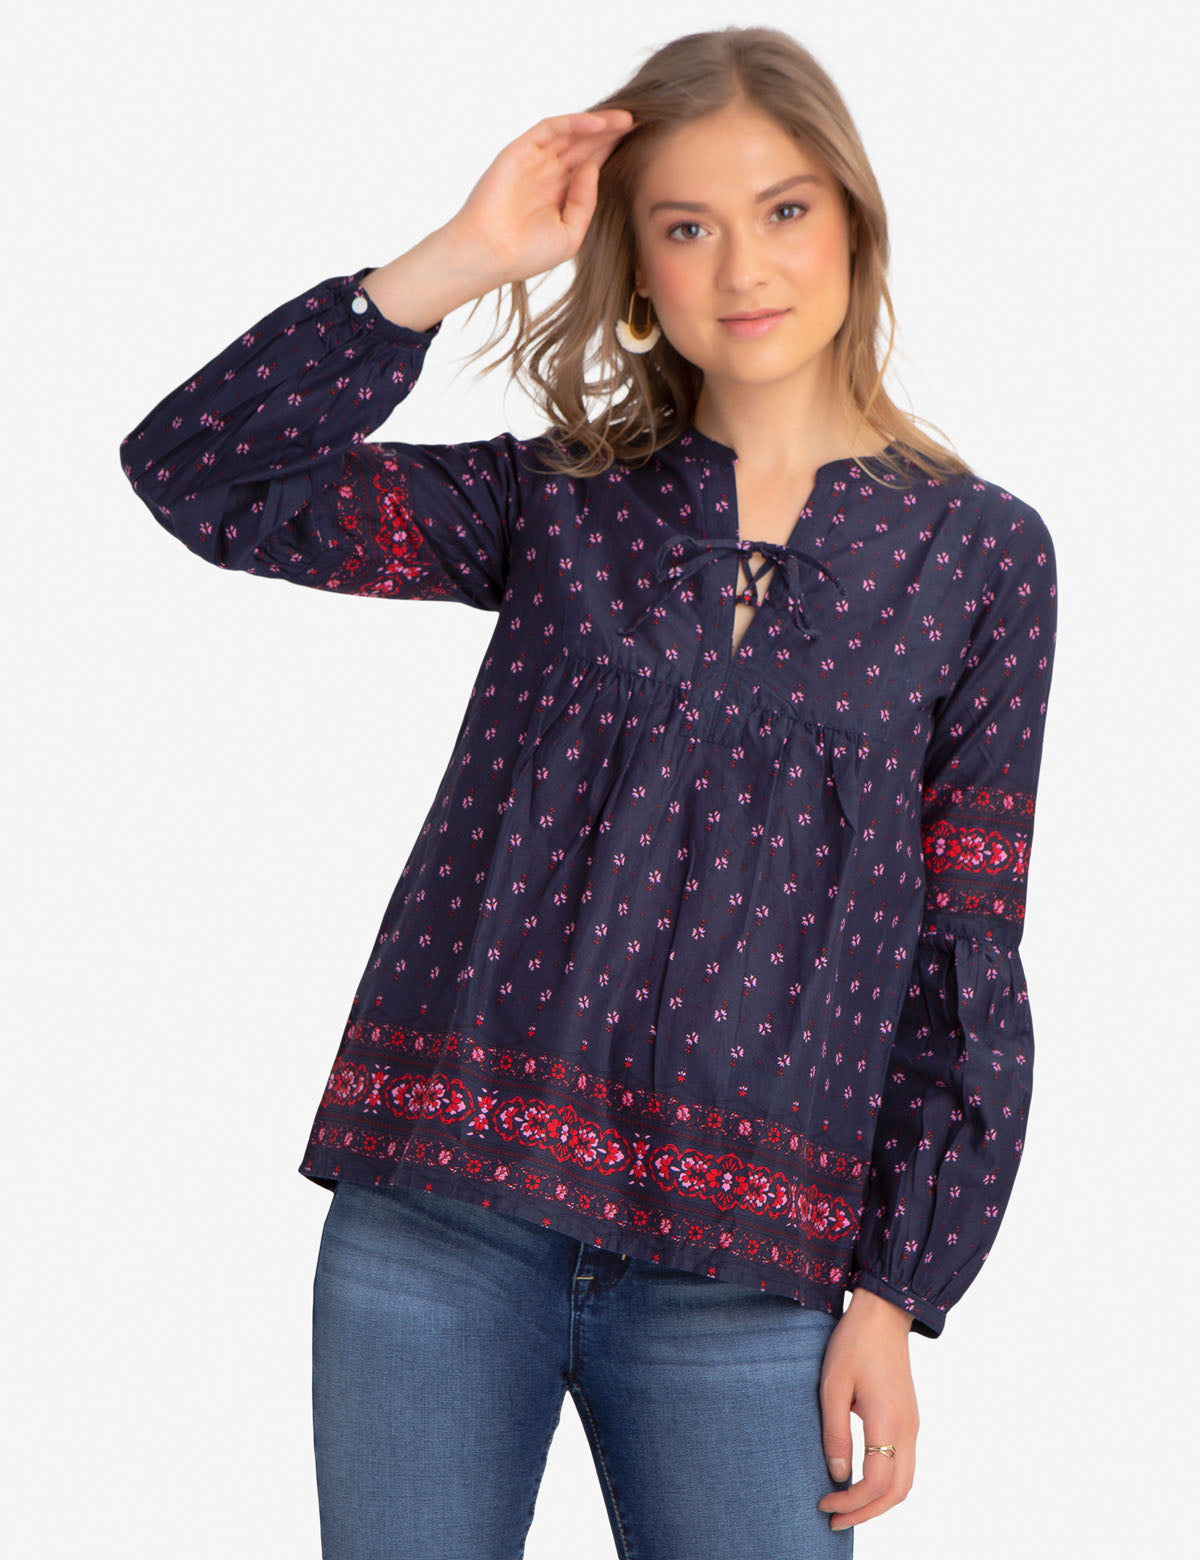 PRINTED LACEUP SHIRT - U.S. Polo Assn.